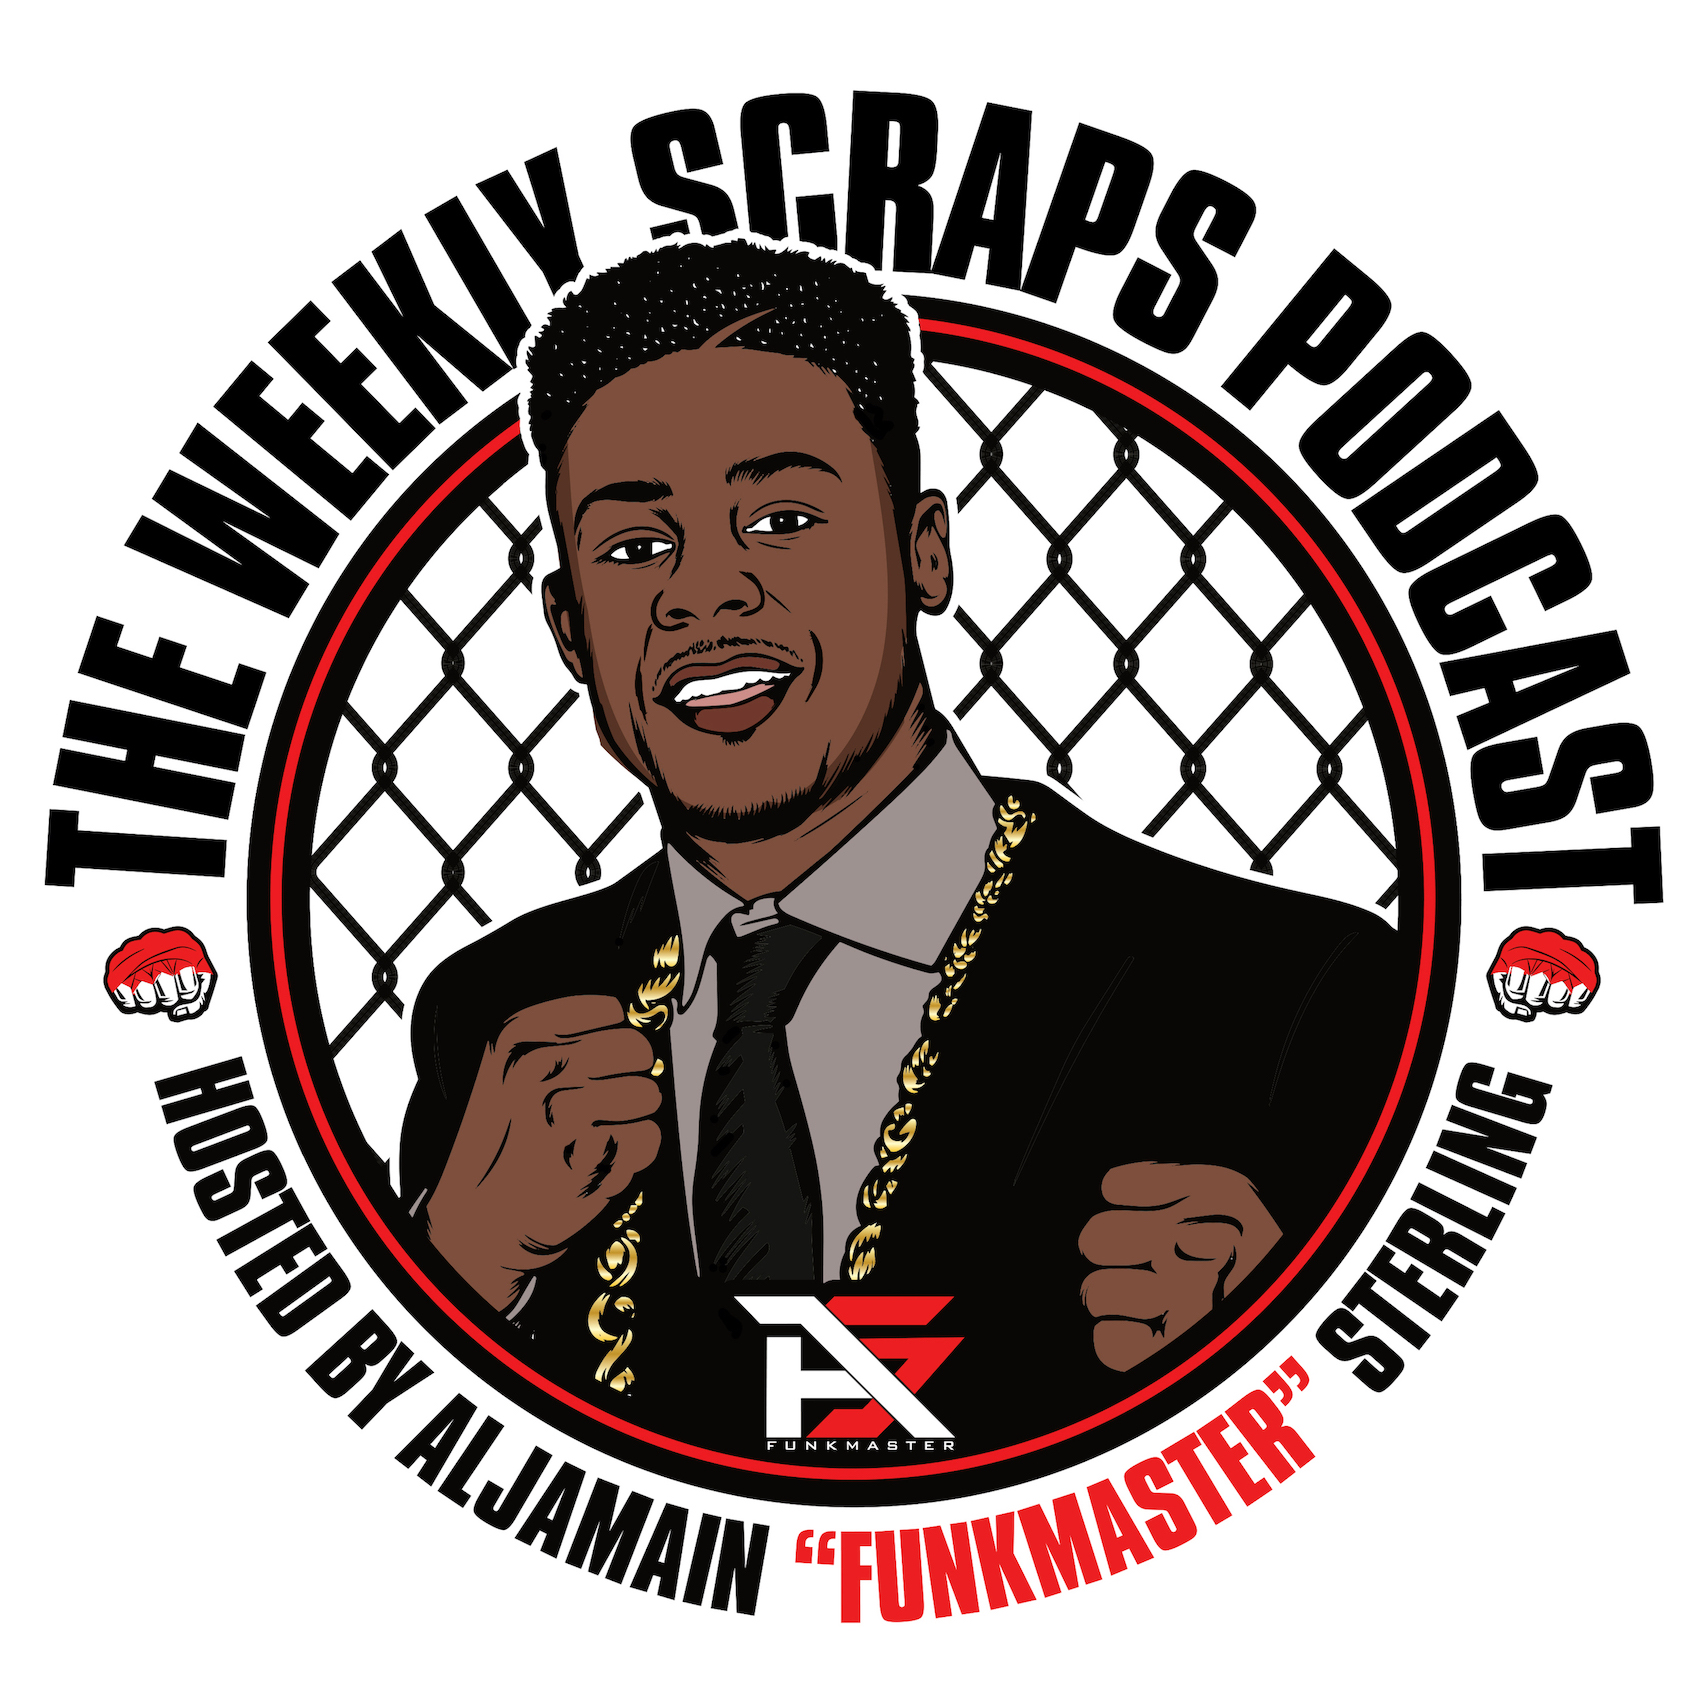 Jimi manuwa clipart graphic transparent The Weekly Scraps EP 24: UFC Stockholm, Interview with ... graphic transparent